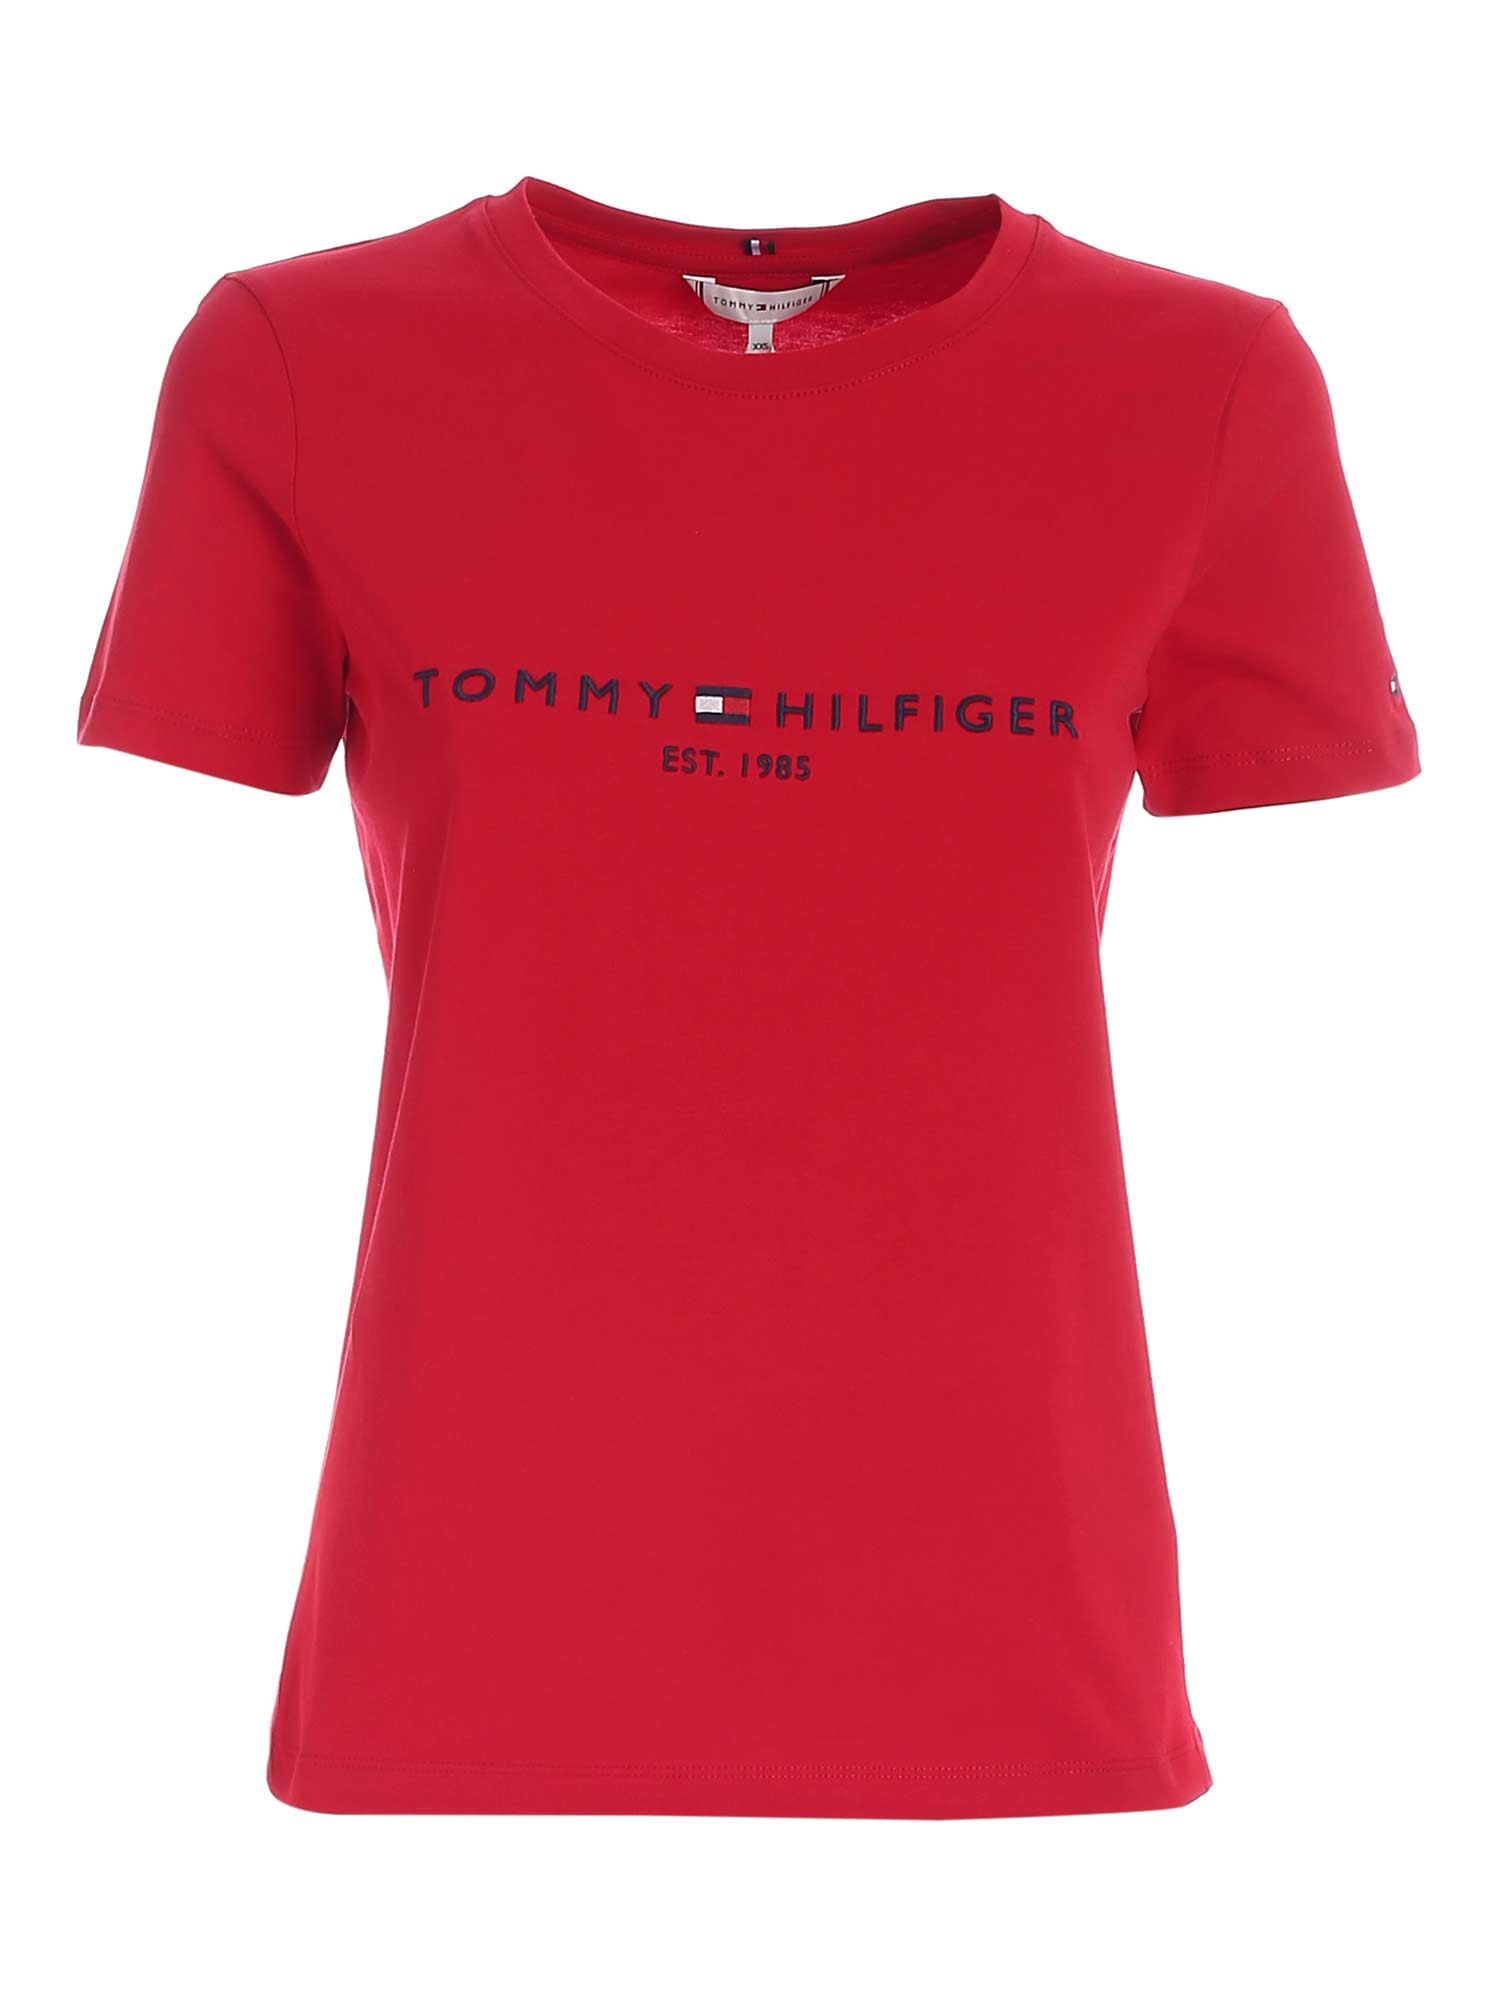 Tommy Hilfiger CONTRASTING EMBROIDERY T-SHIRT IN RED